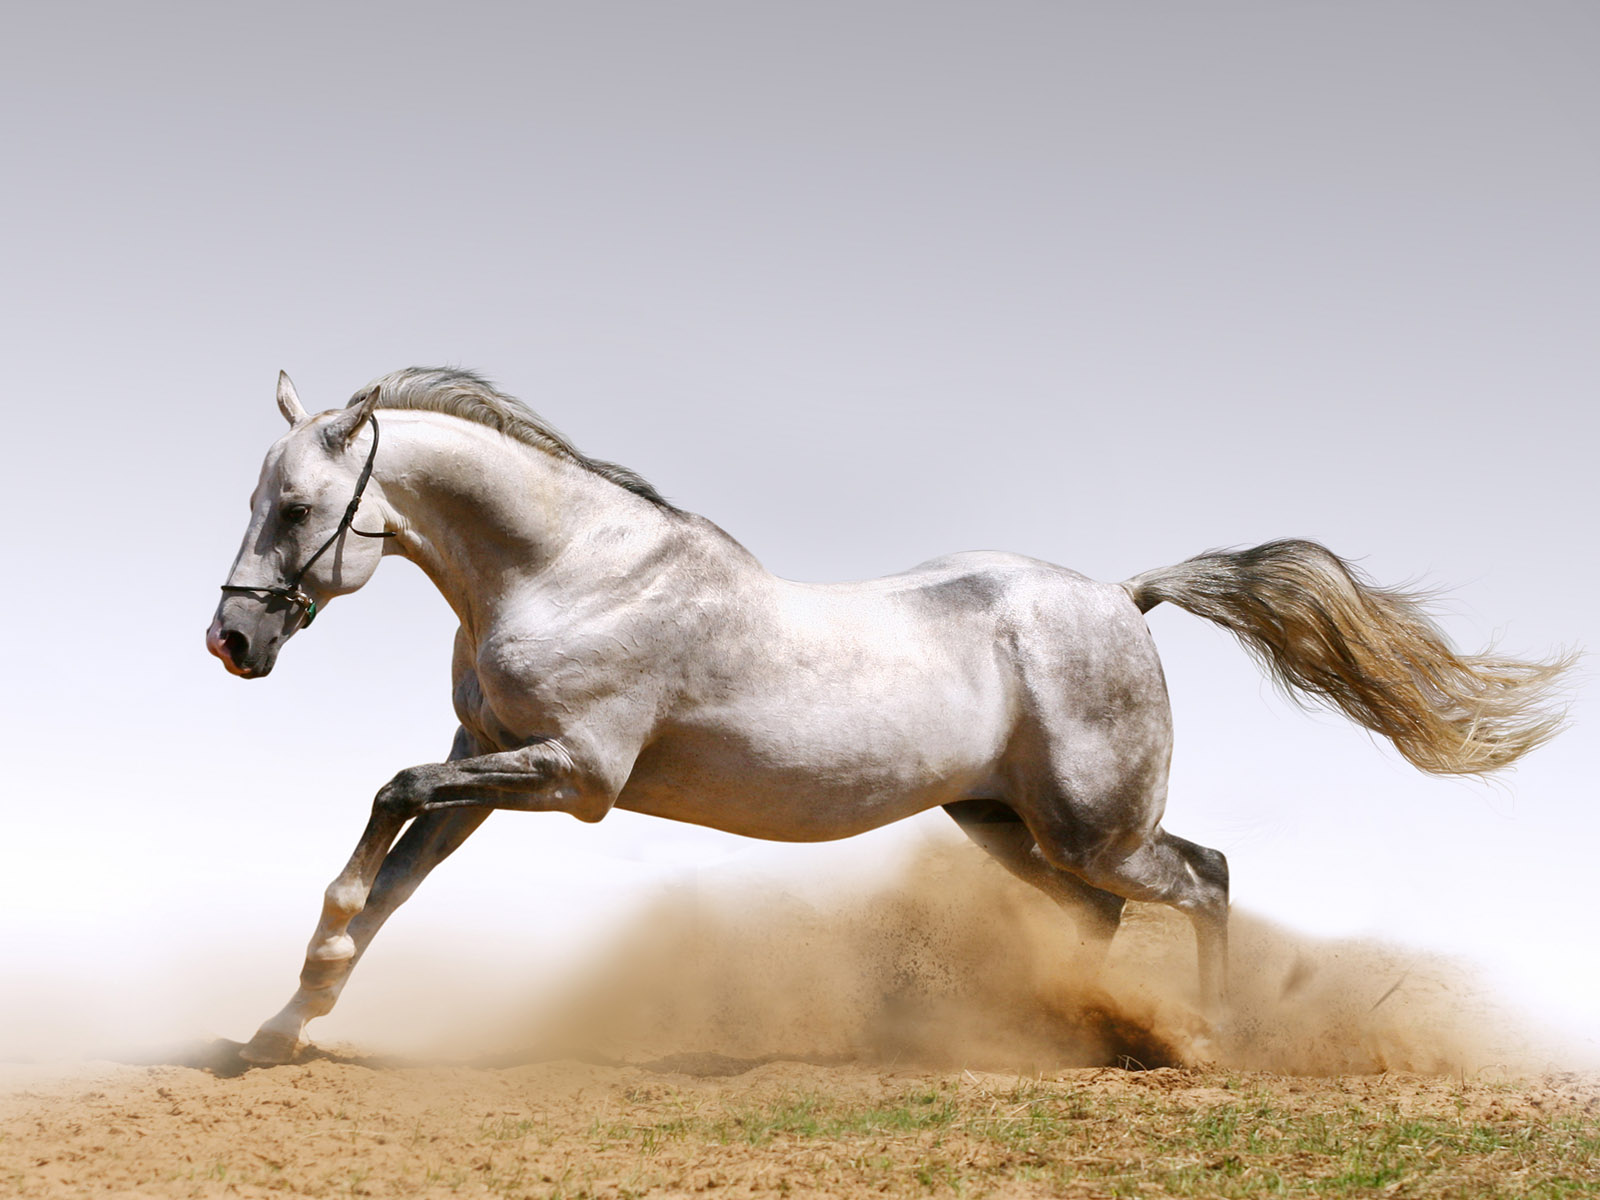 Animals Zoo Park: 9 White Running Horse Wallpapers, White ... - photo#33